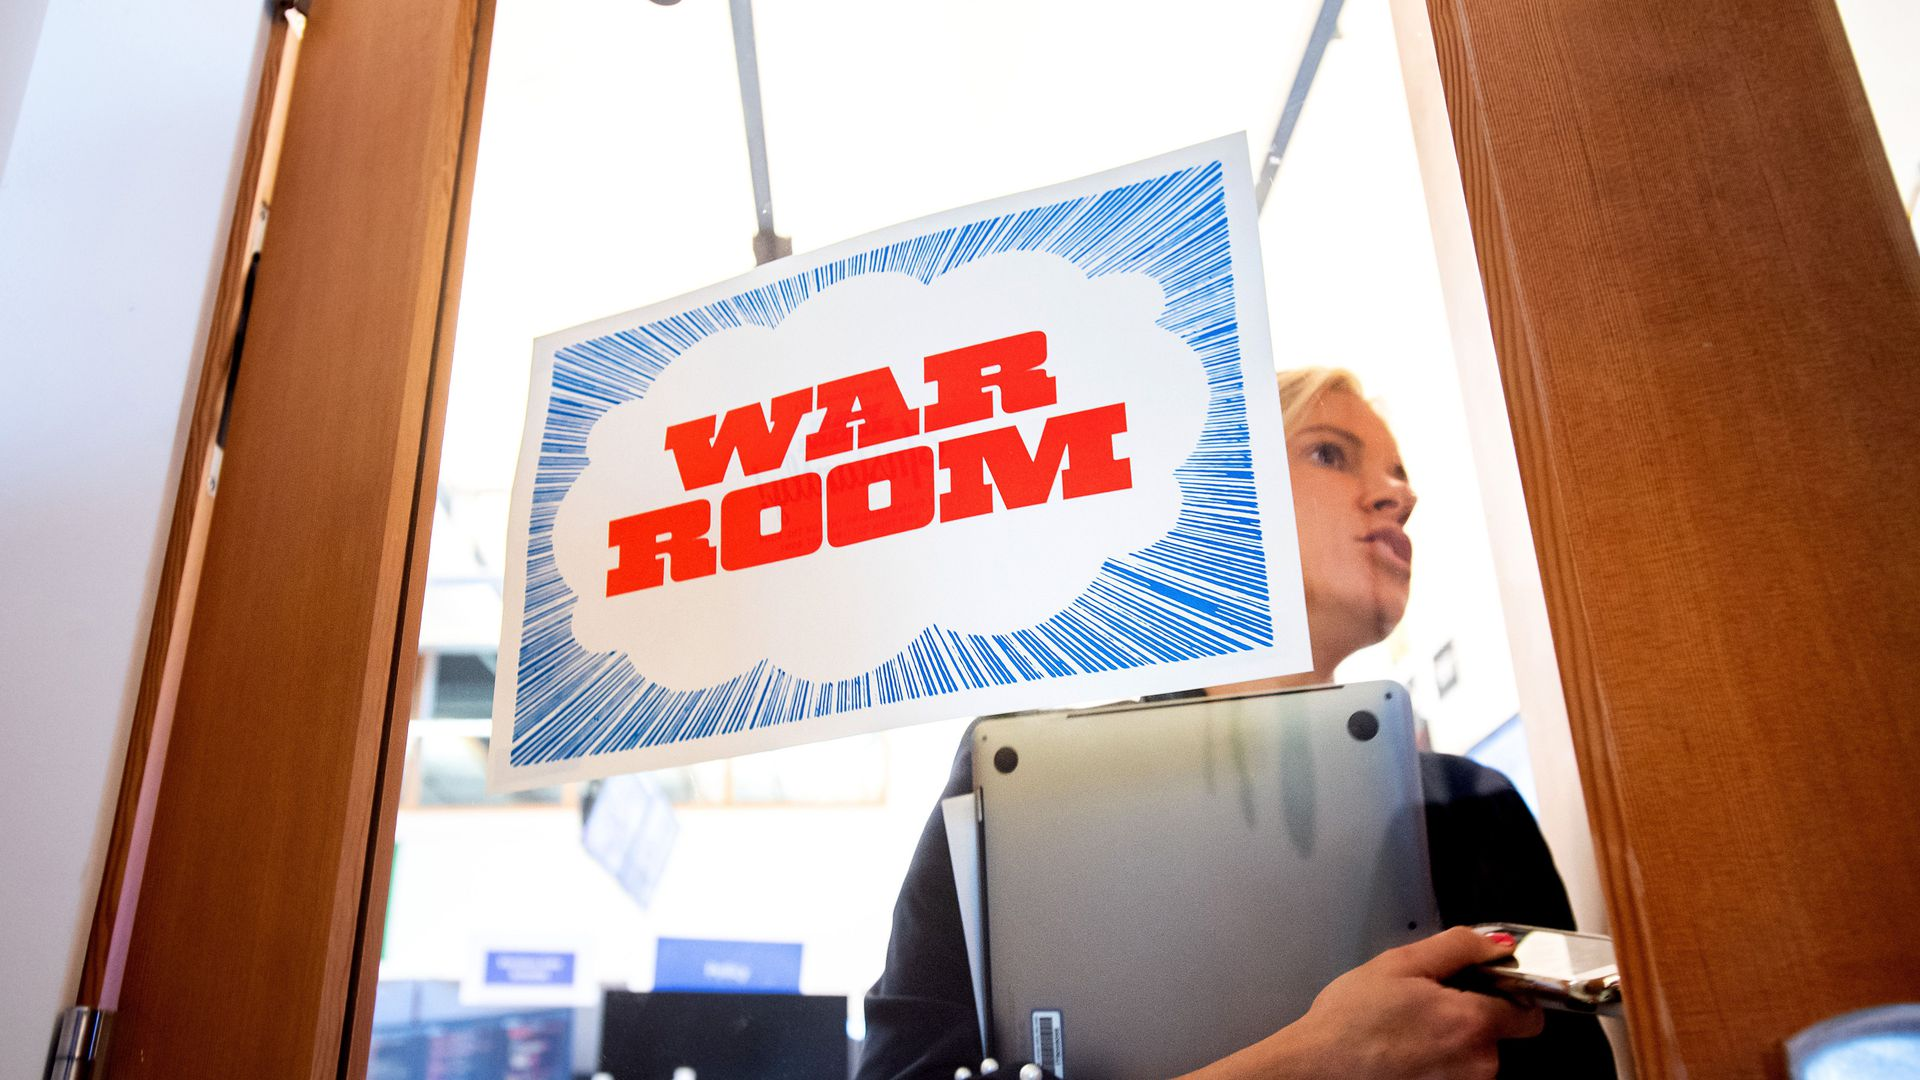 Facebook's war room